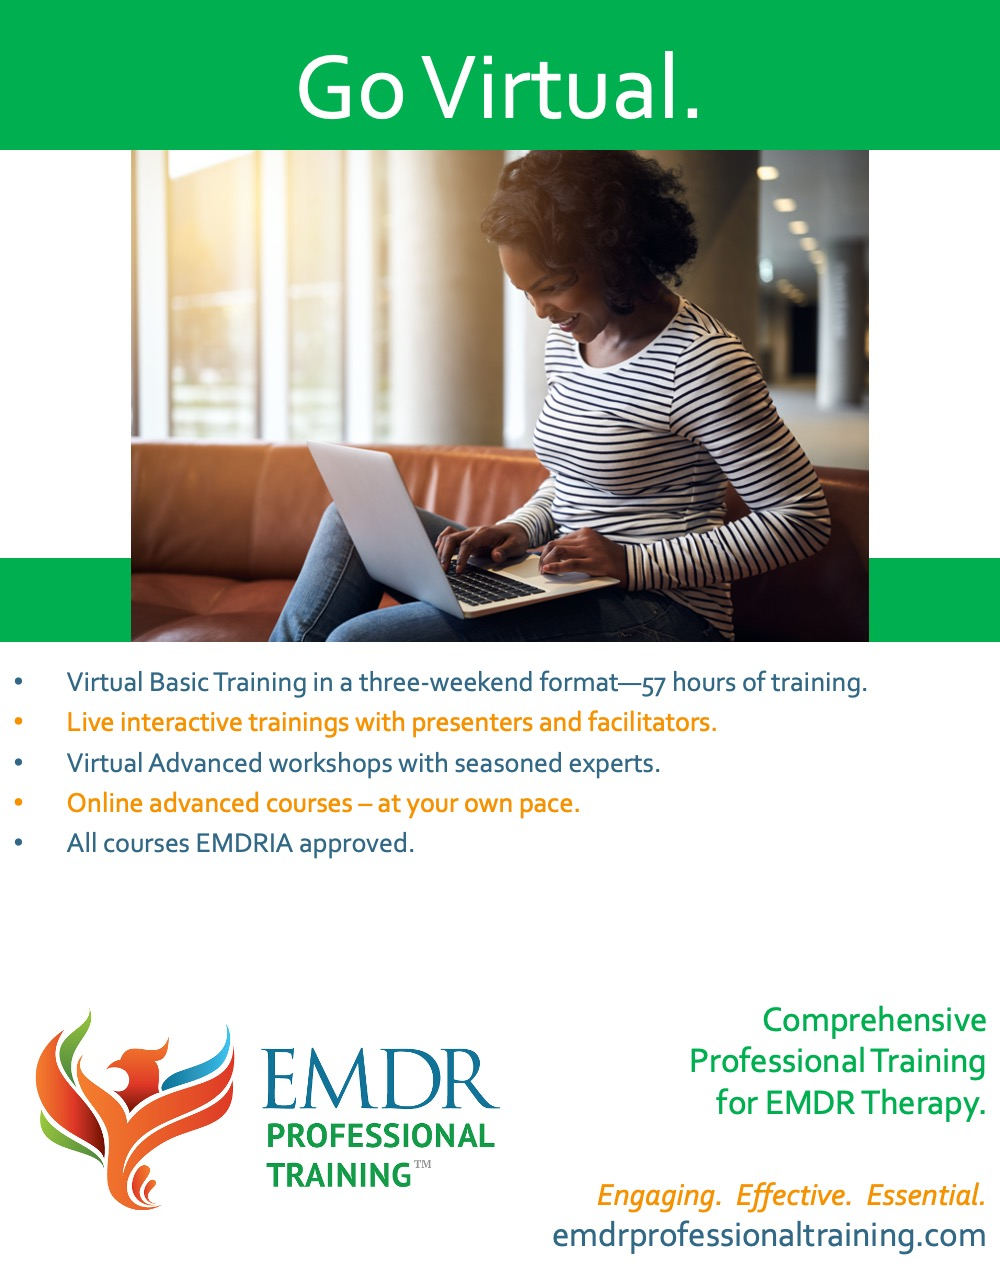 Comprehensive professional training for EMDR therapy